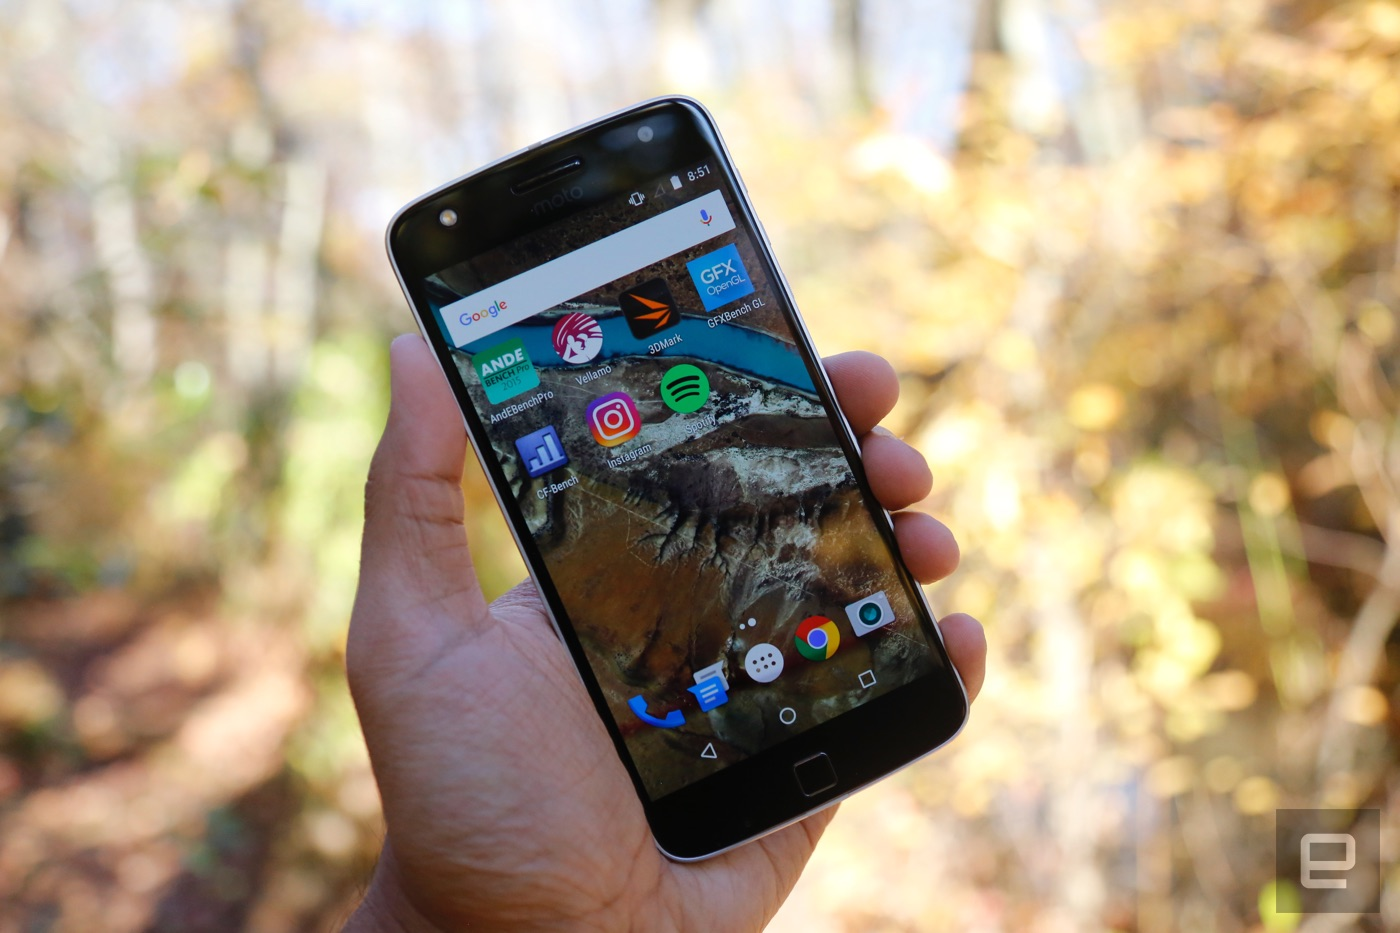 Moto Z Play review: Buy it for the battery life